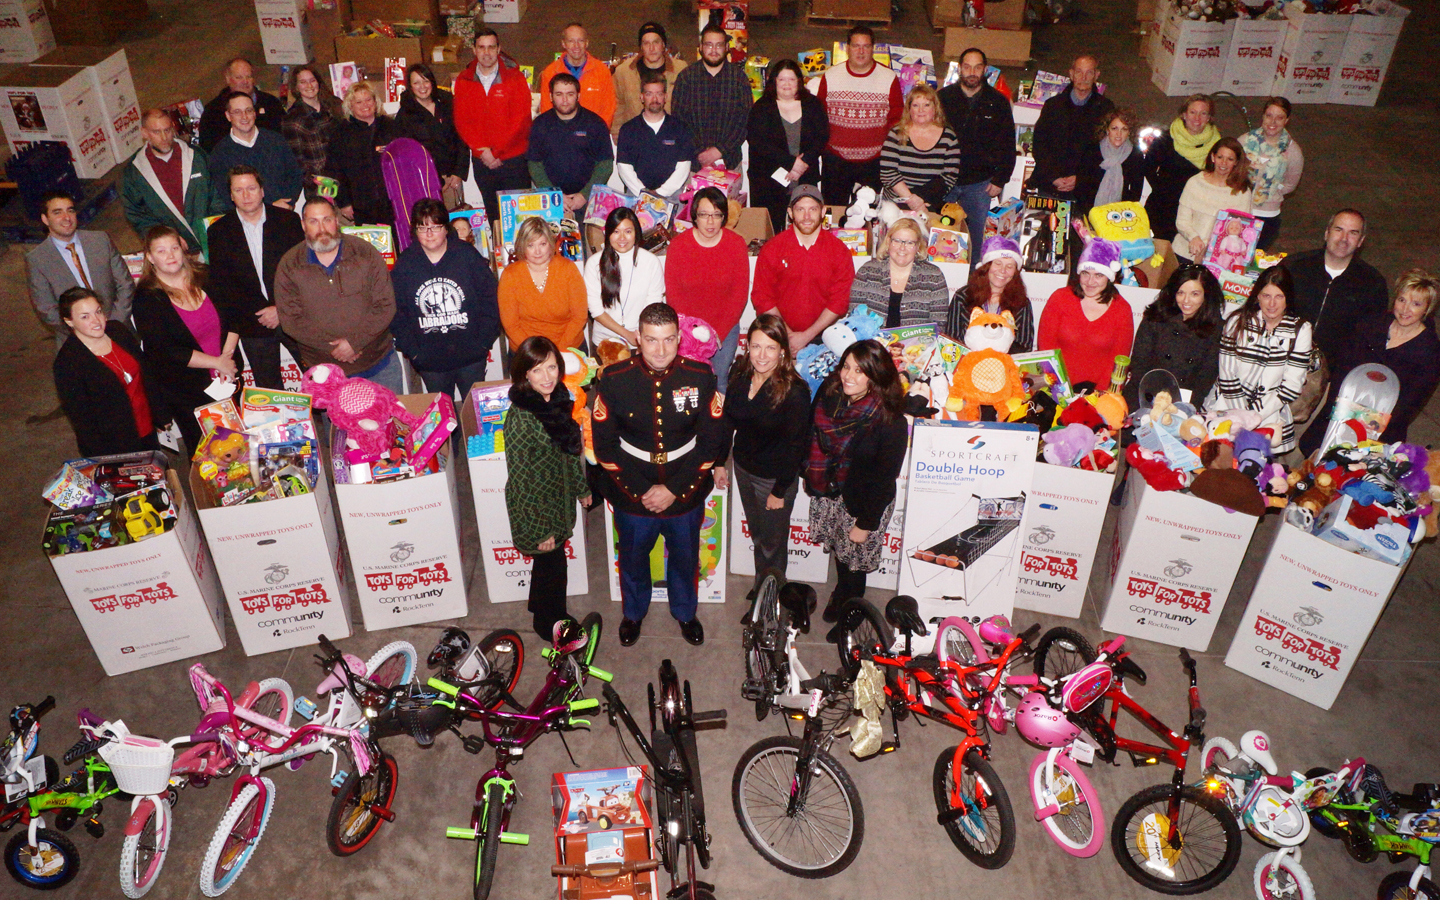 Robert K. Mericle Toys For Tots